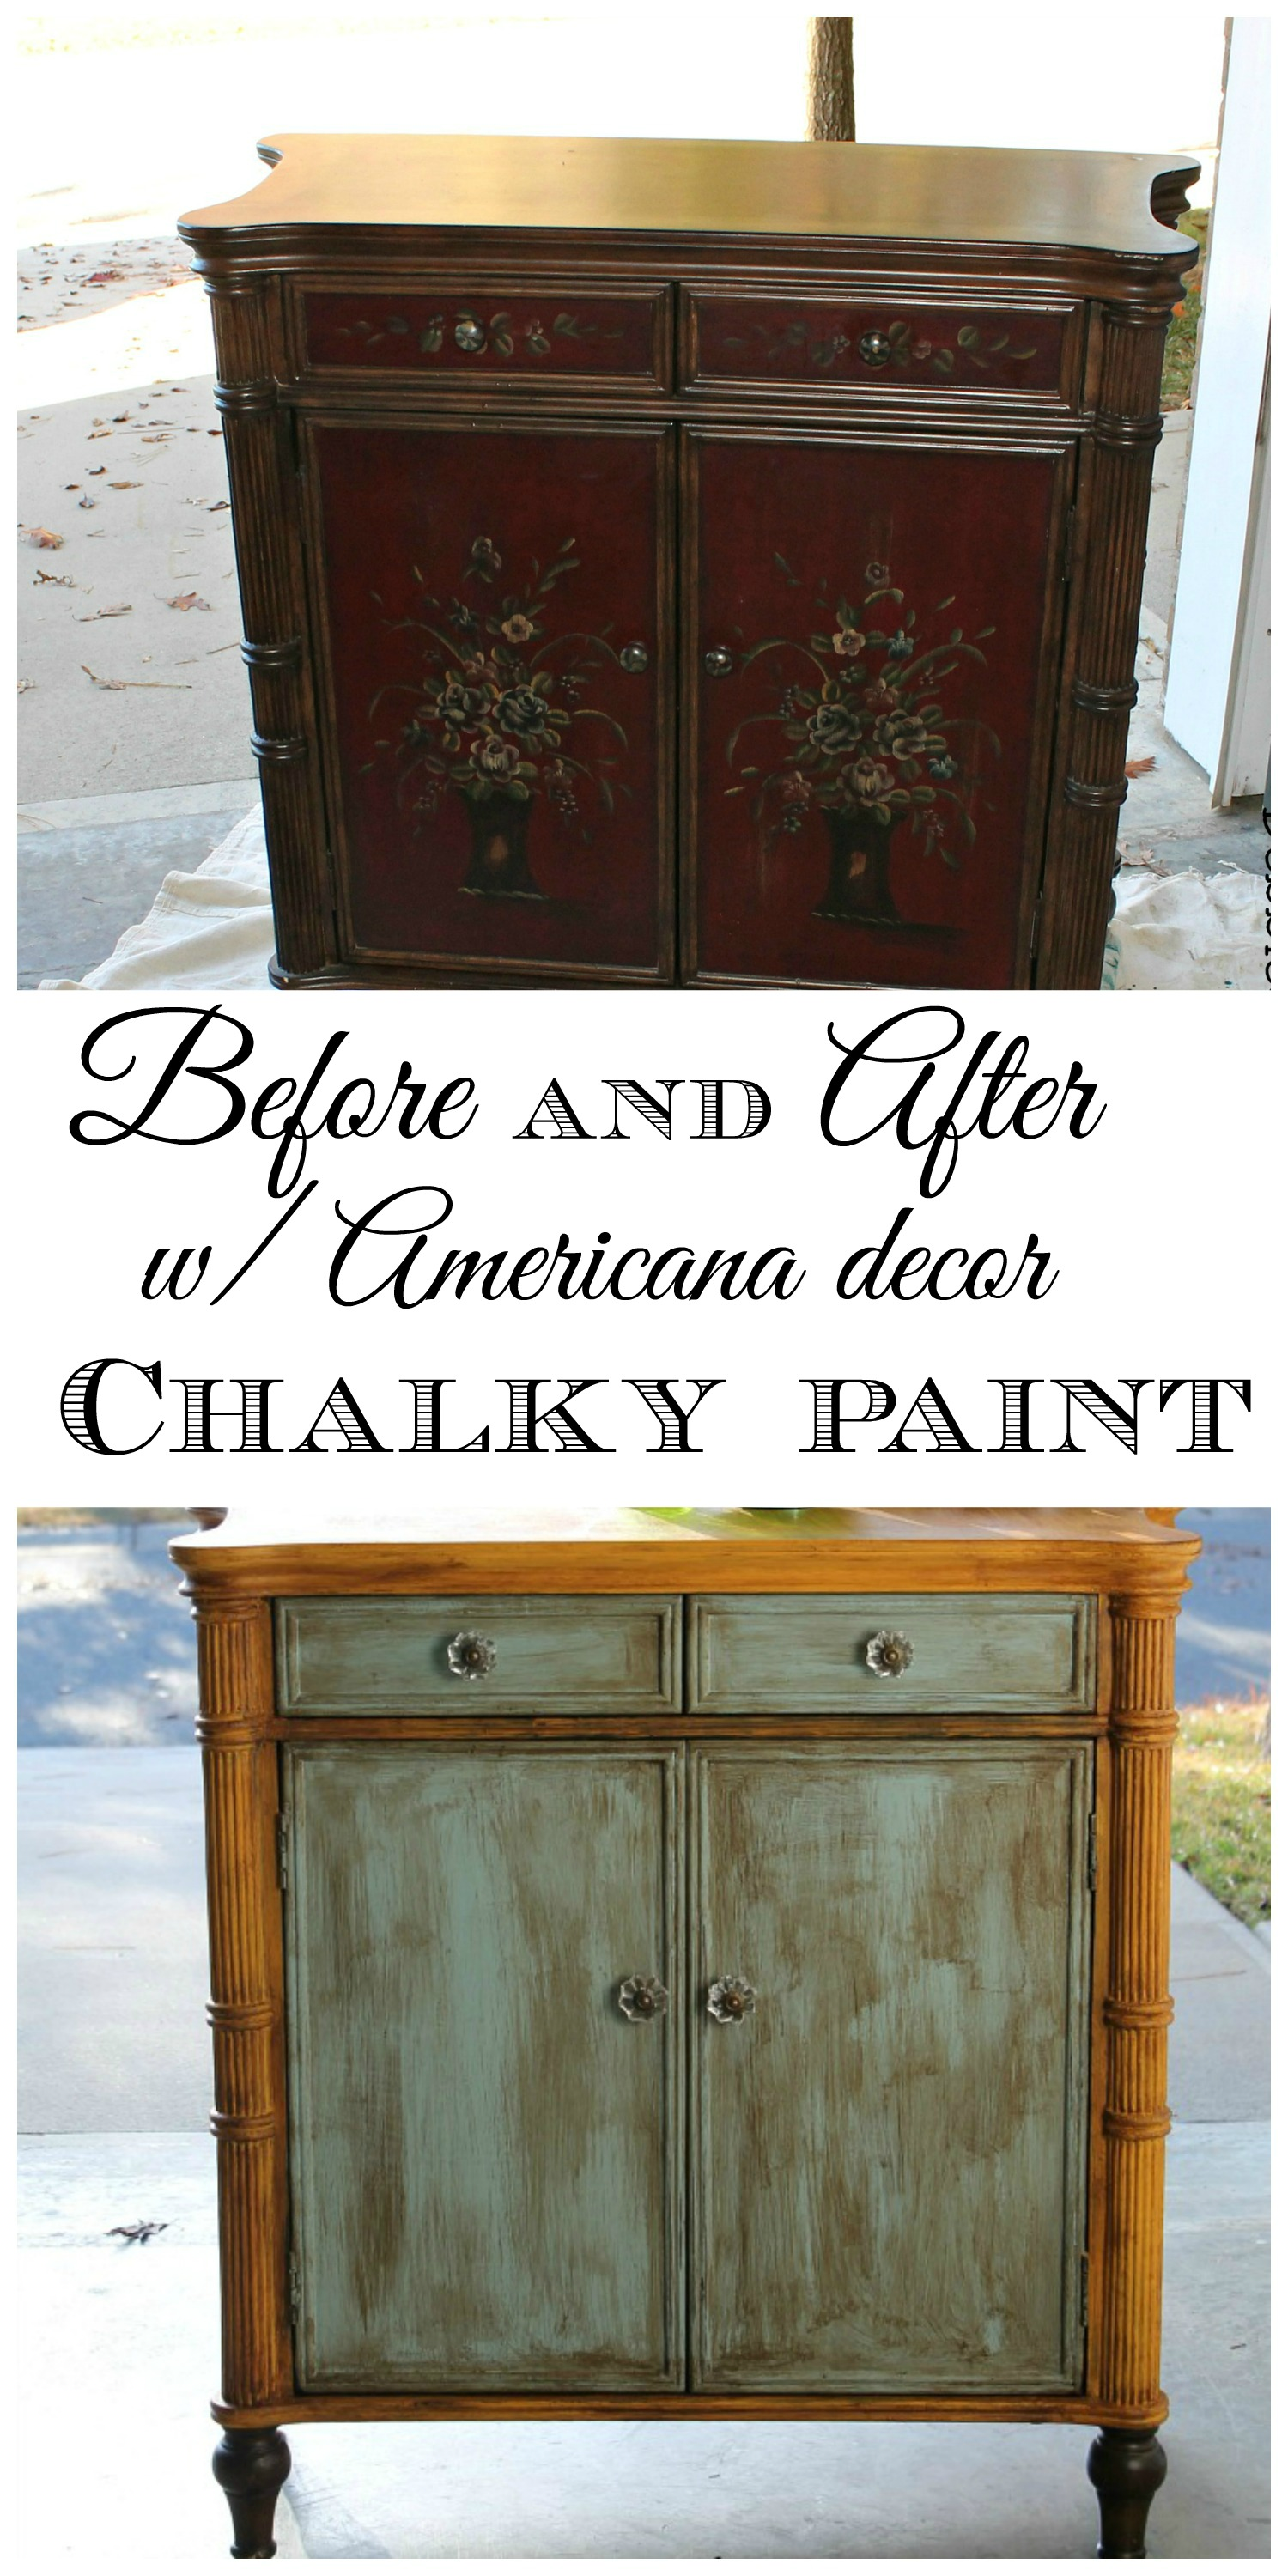 Before and after with Deco Americana chalky paint